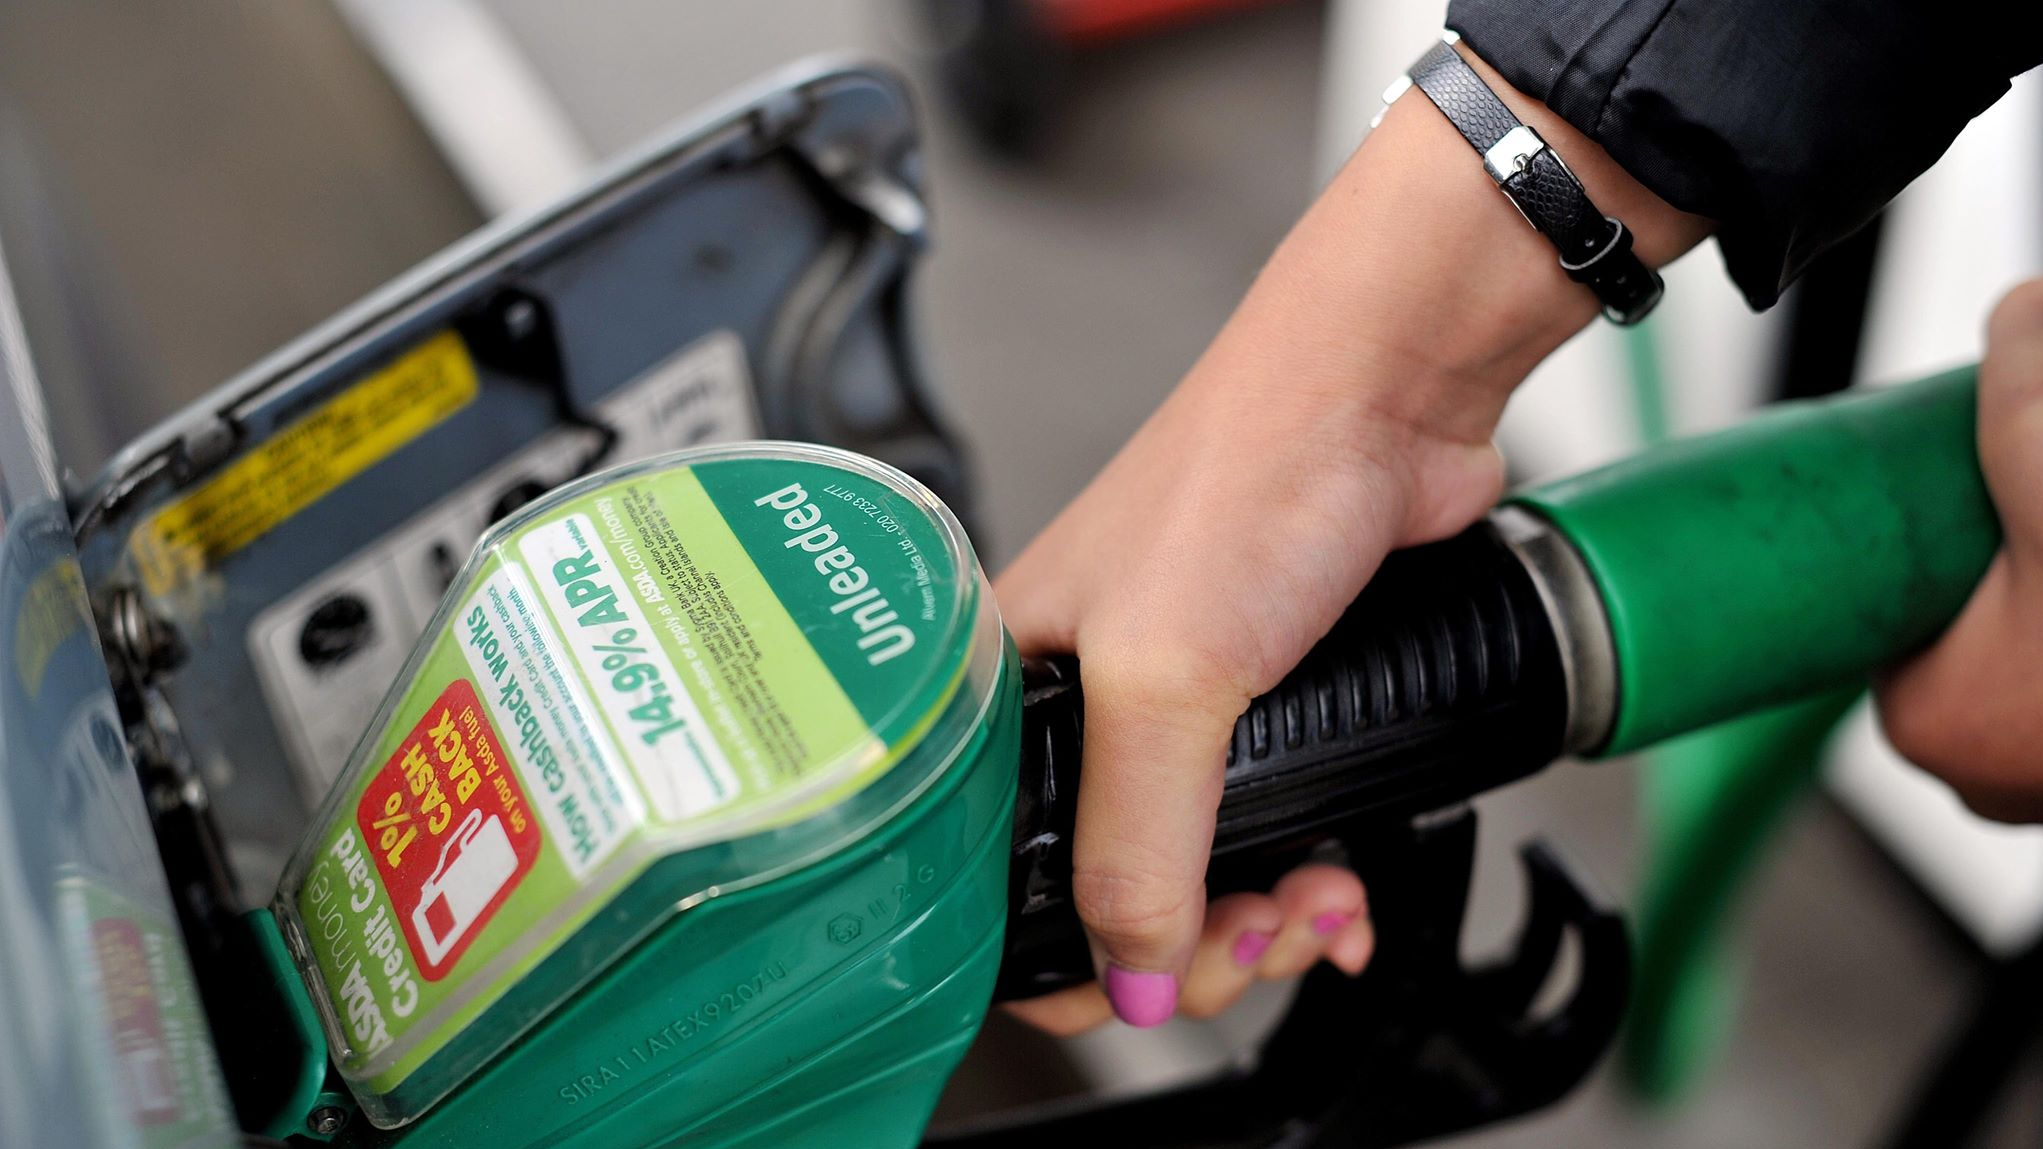 ASDA Cuts Three Pence Off The Price Of Fuel